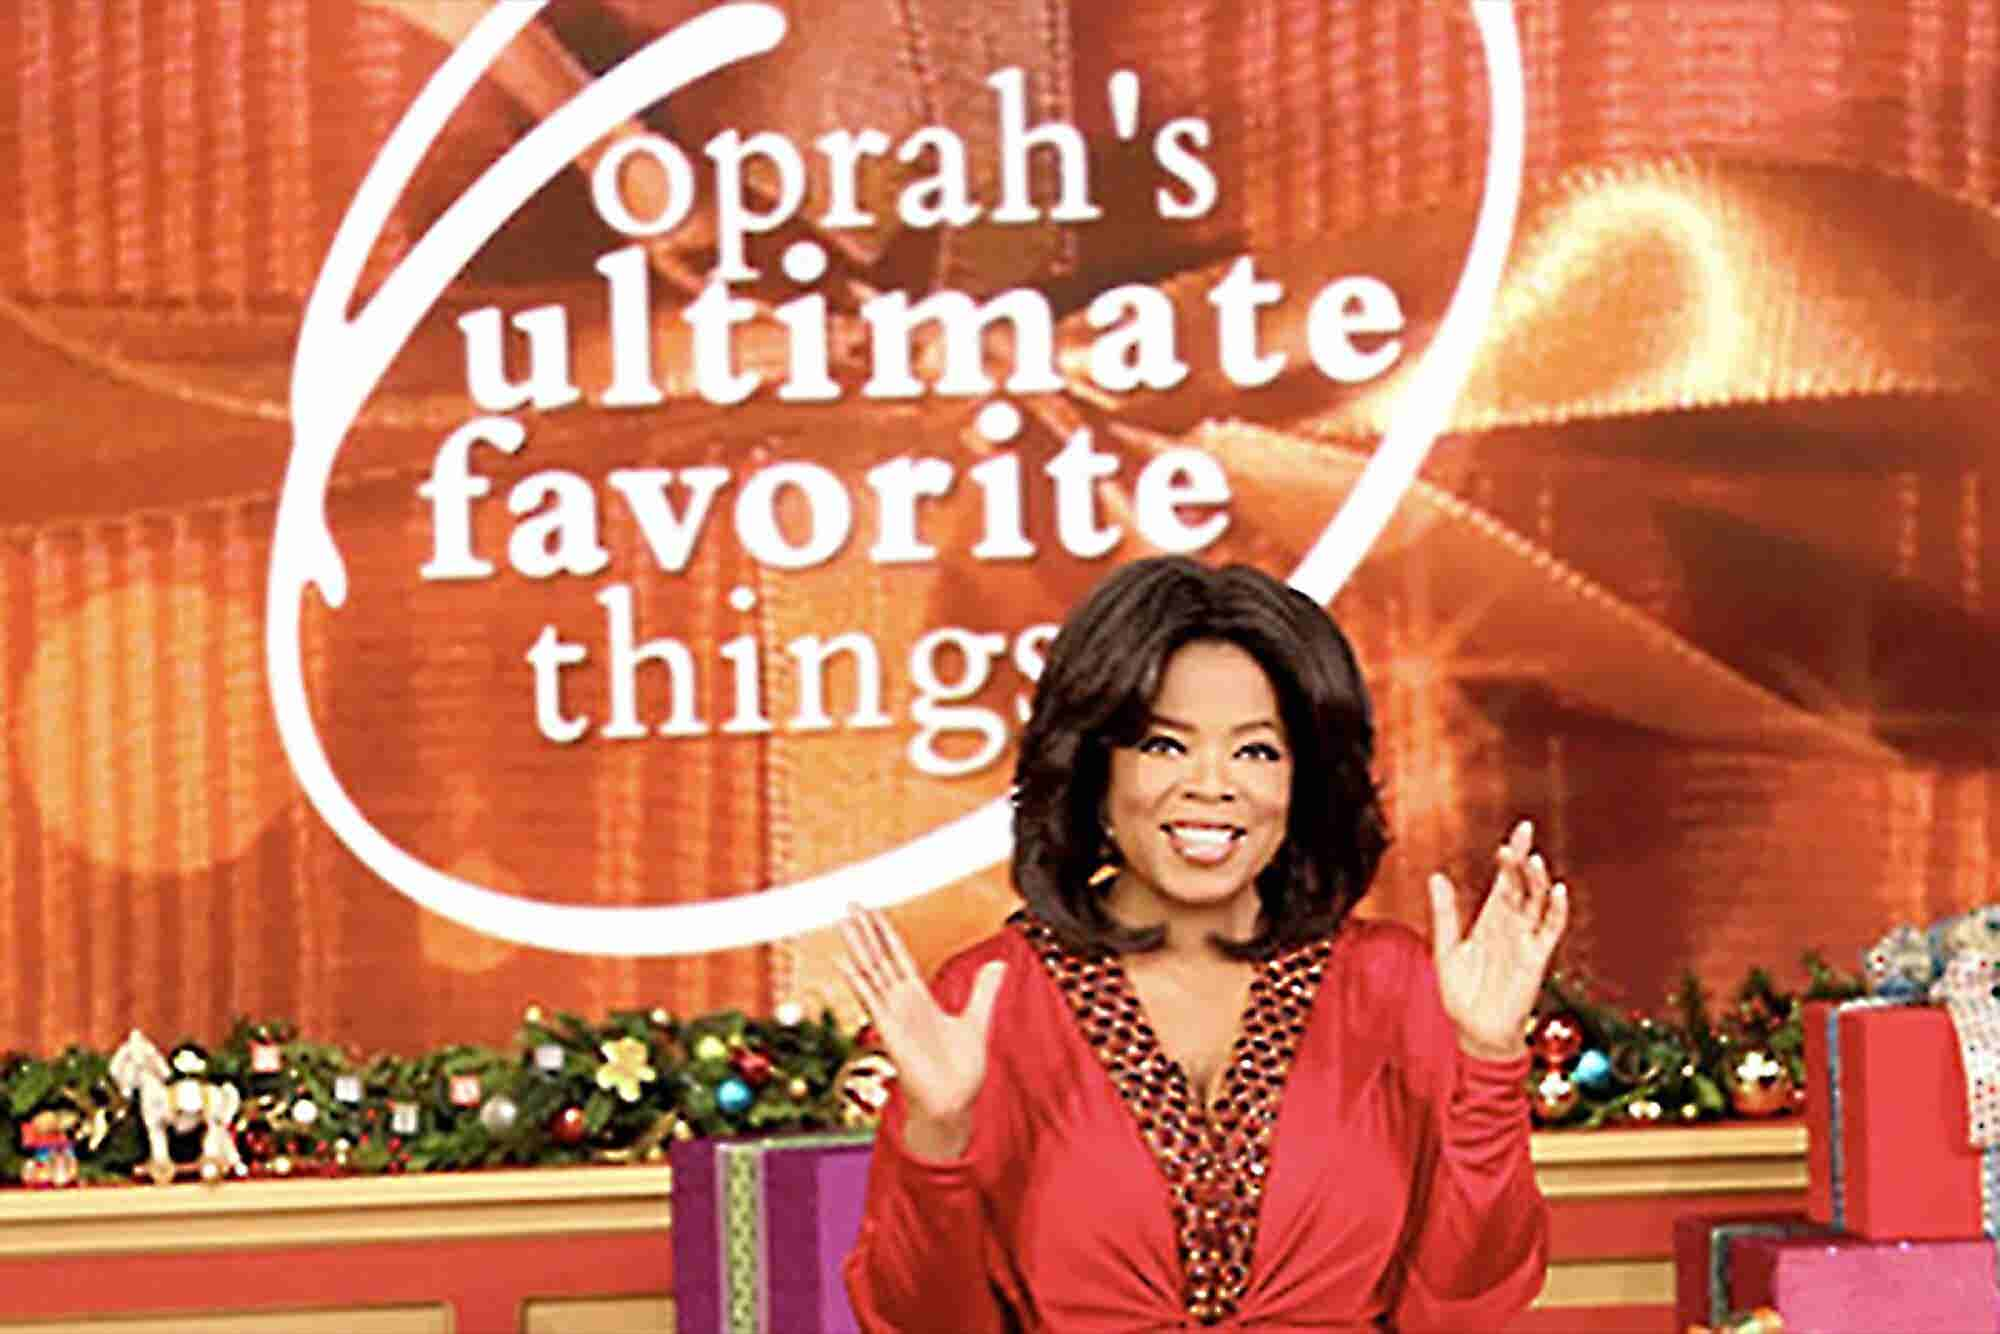 Has the Oprah Effect Diminished?